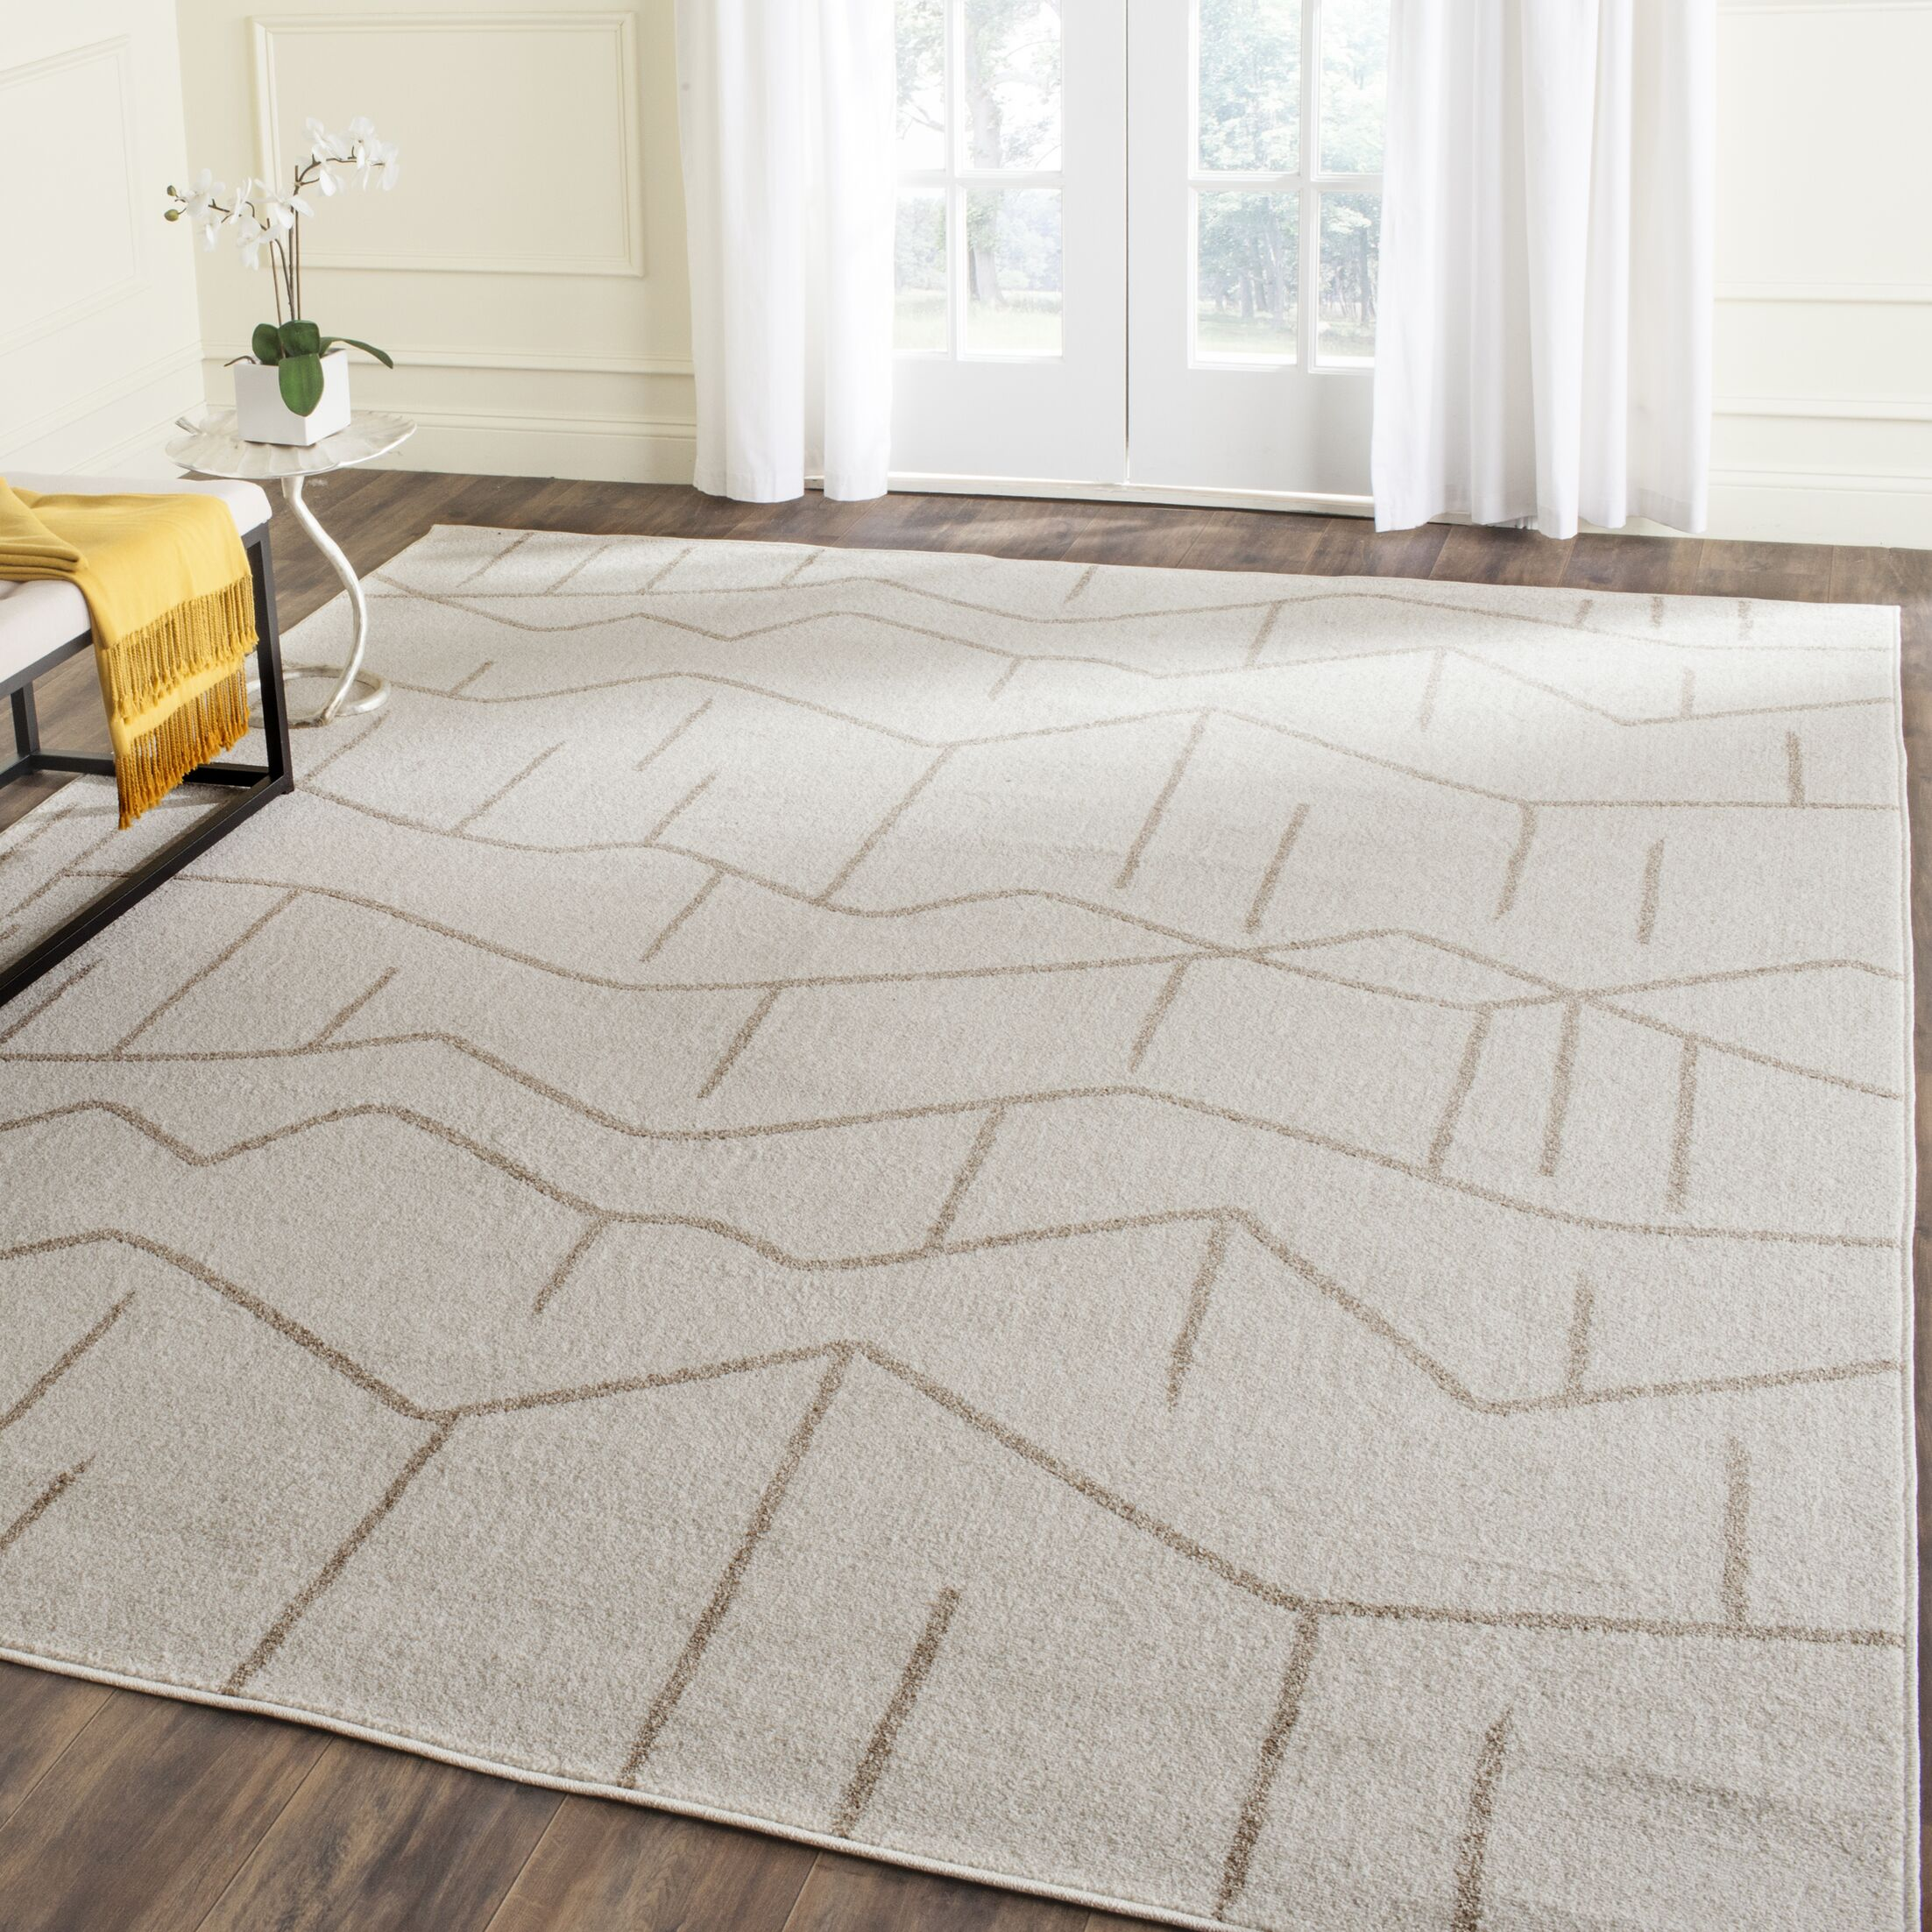 Dunclug Ivory/Grey Area Rug Rug Size: Rectangle 8' x 10'